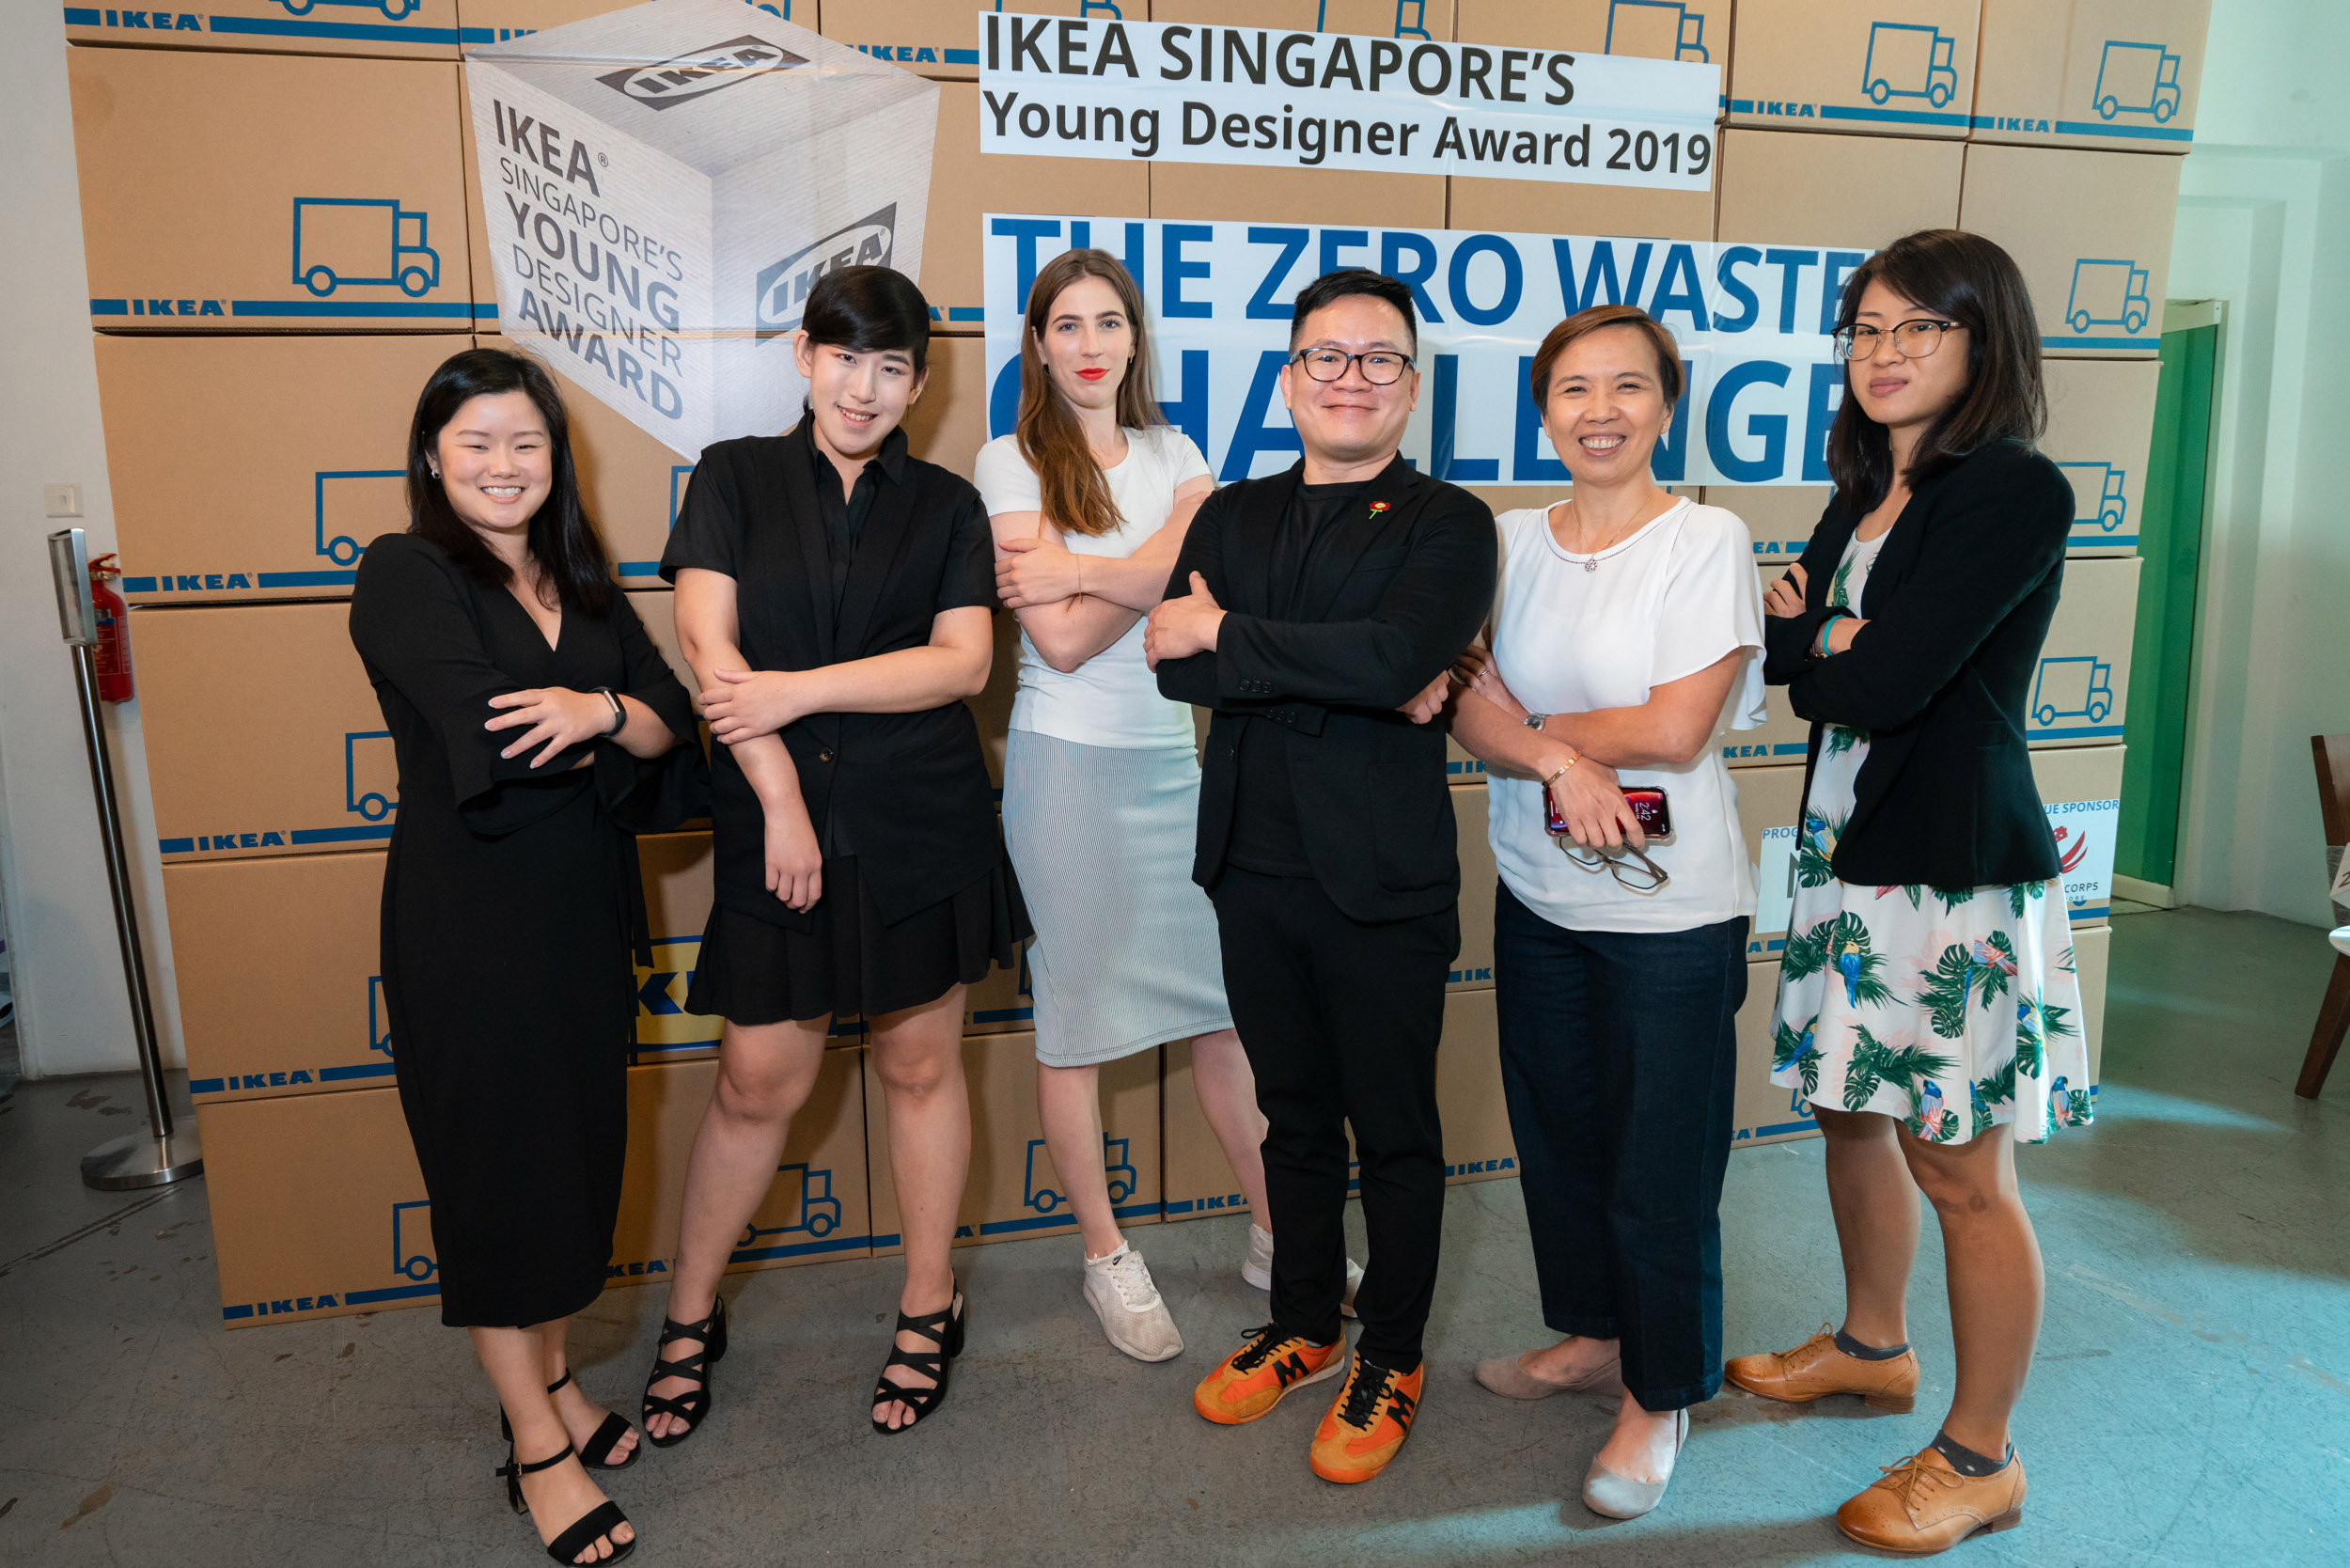 Here are the winners of IKEA Singapore's Young Designer Award 2019 - Alvinology